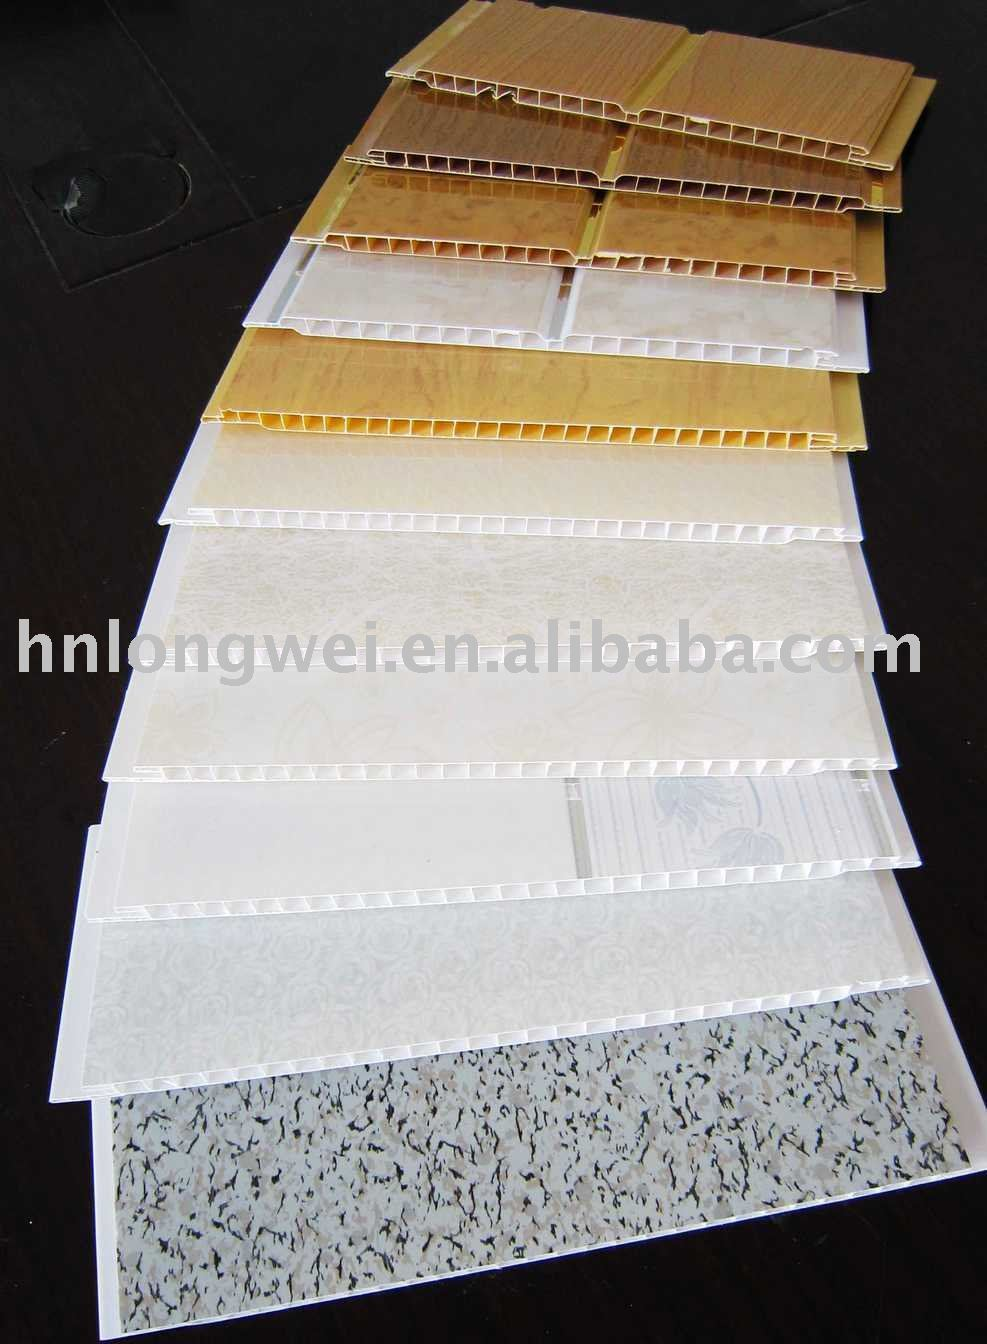 Install ceiling tiles install ceiling tiles suppliers and install ceiling tiles install ceiling tiles suppliers and manufacturers at alibaba dailygadgetfo Image collections